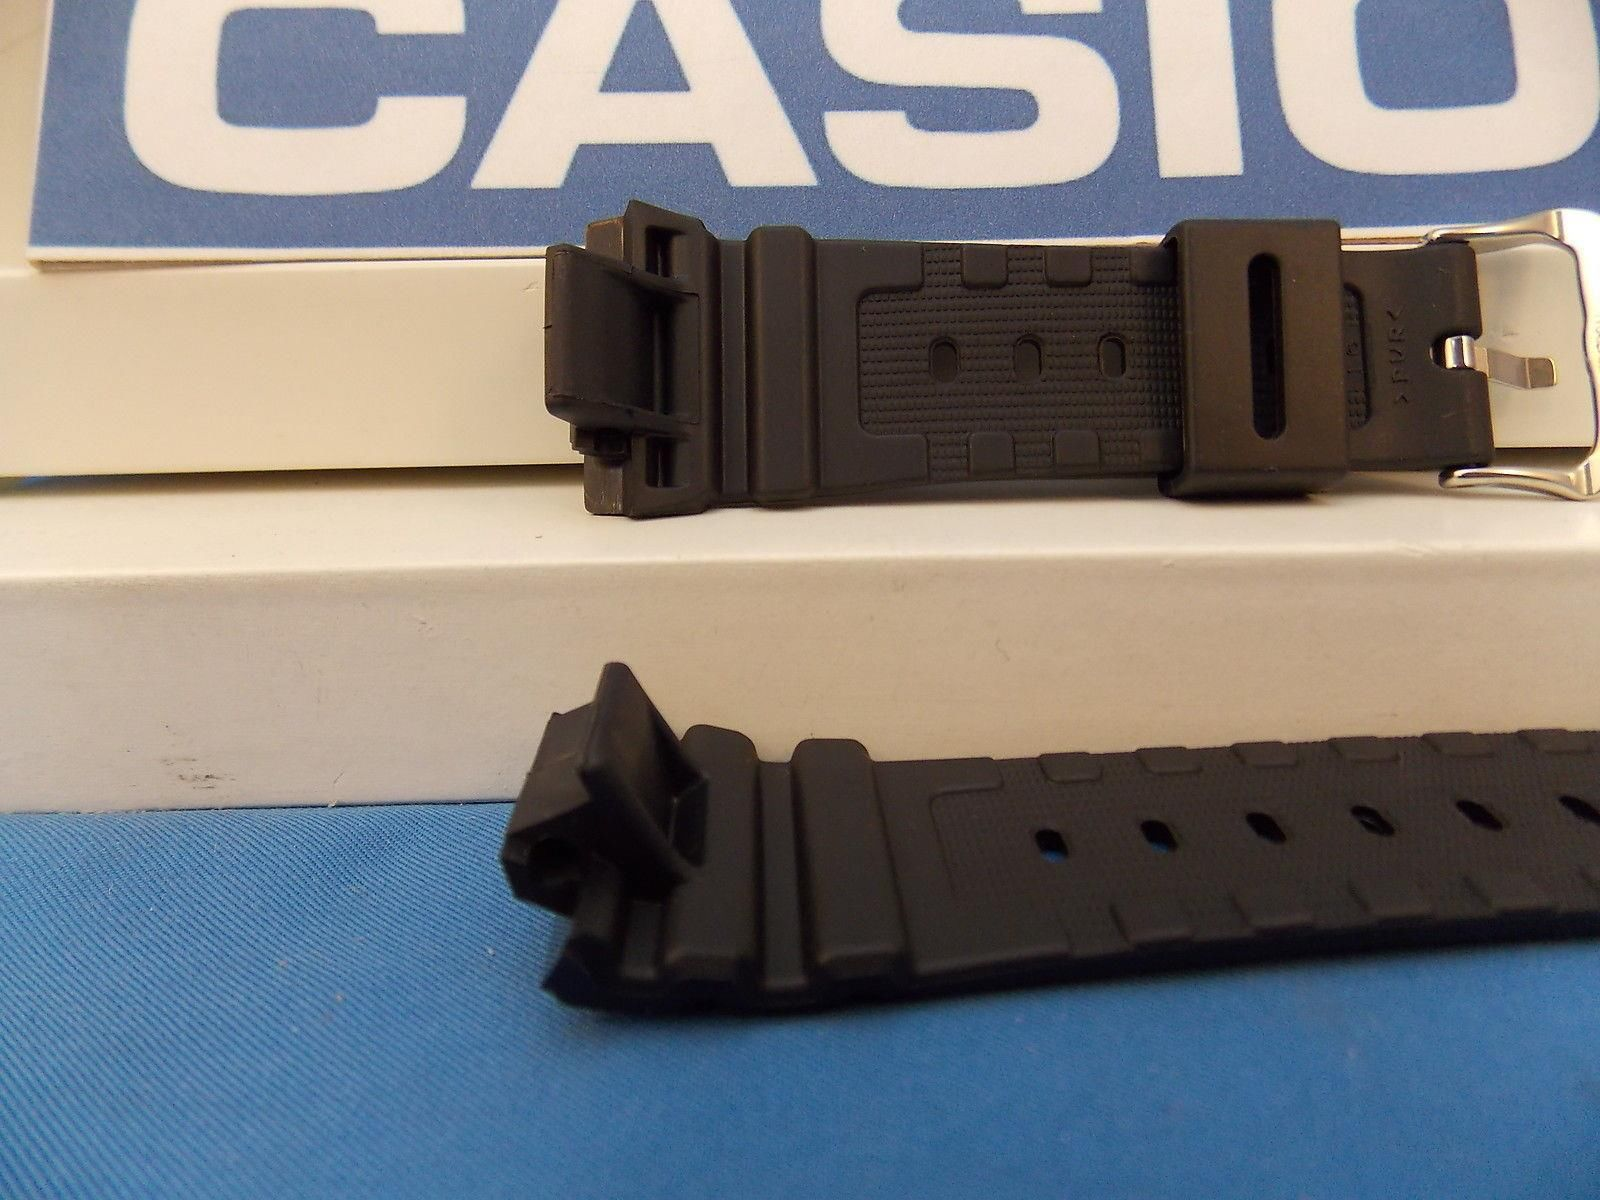 Original Strap for G-Shock GWX-5600 Wristwatch